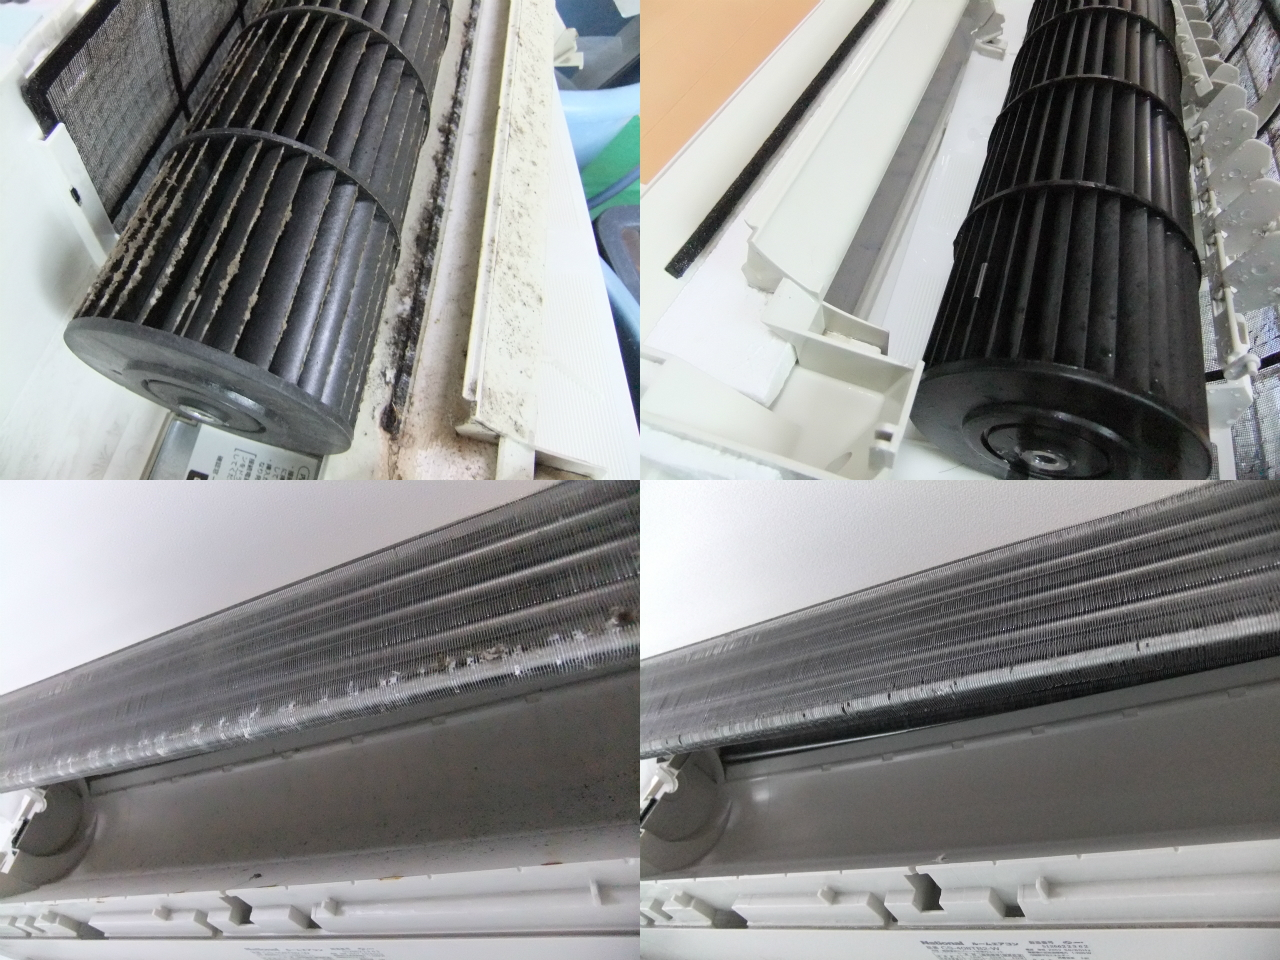 http://ajras.net/images/120503-aircon1.jpg